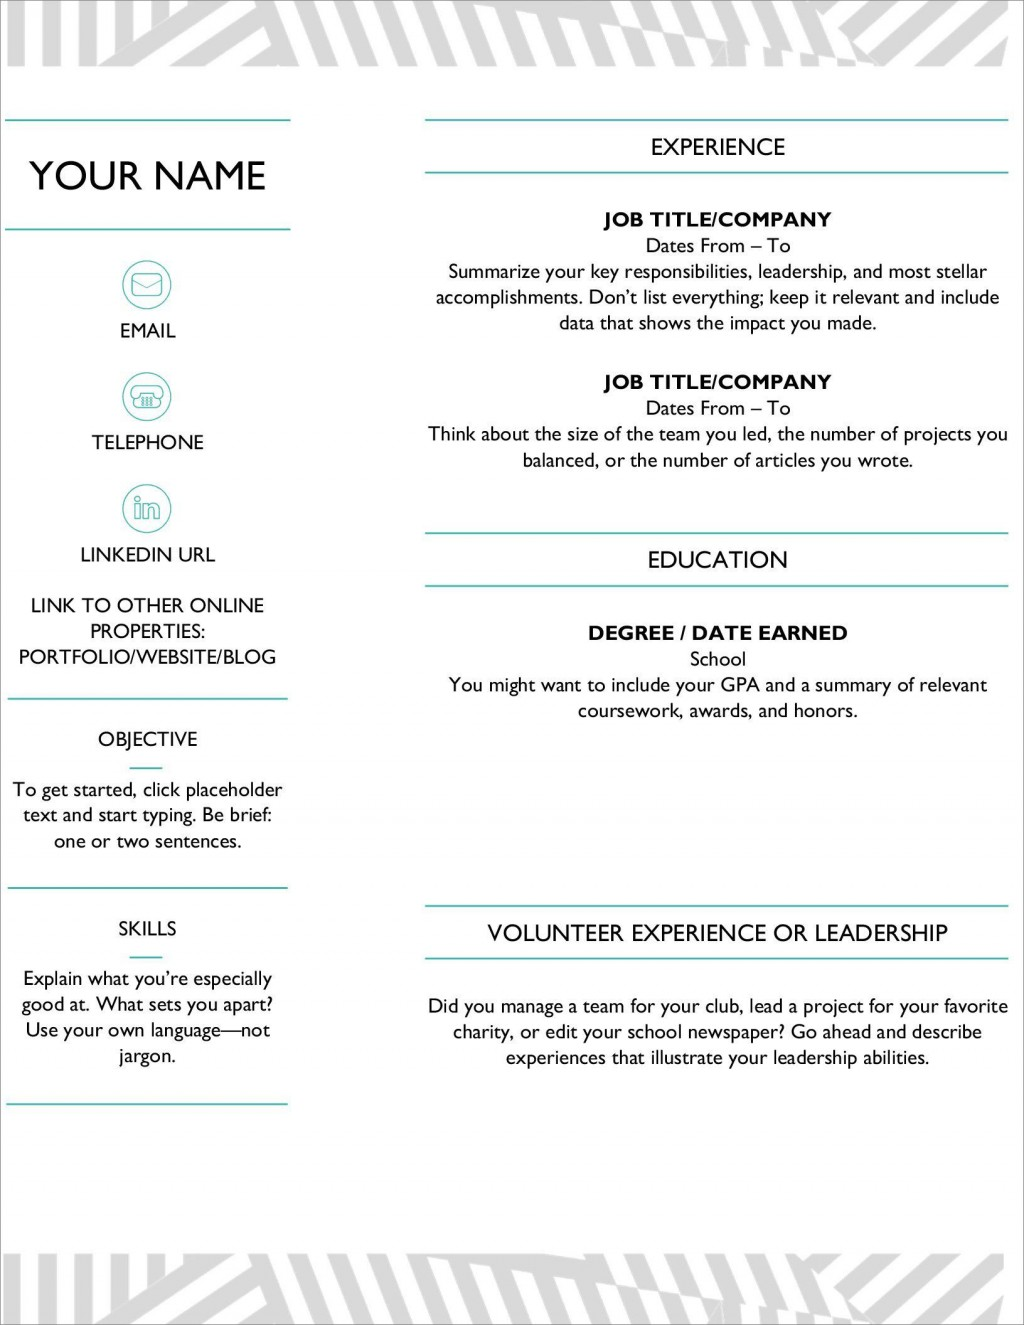 007 Exceptional Downloadable Resume Template Word Picture  Free Download Philippine 2018Large